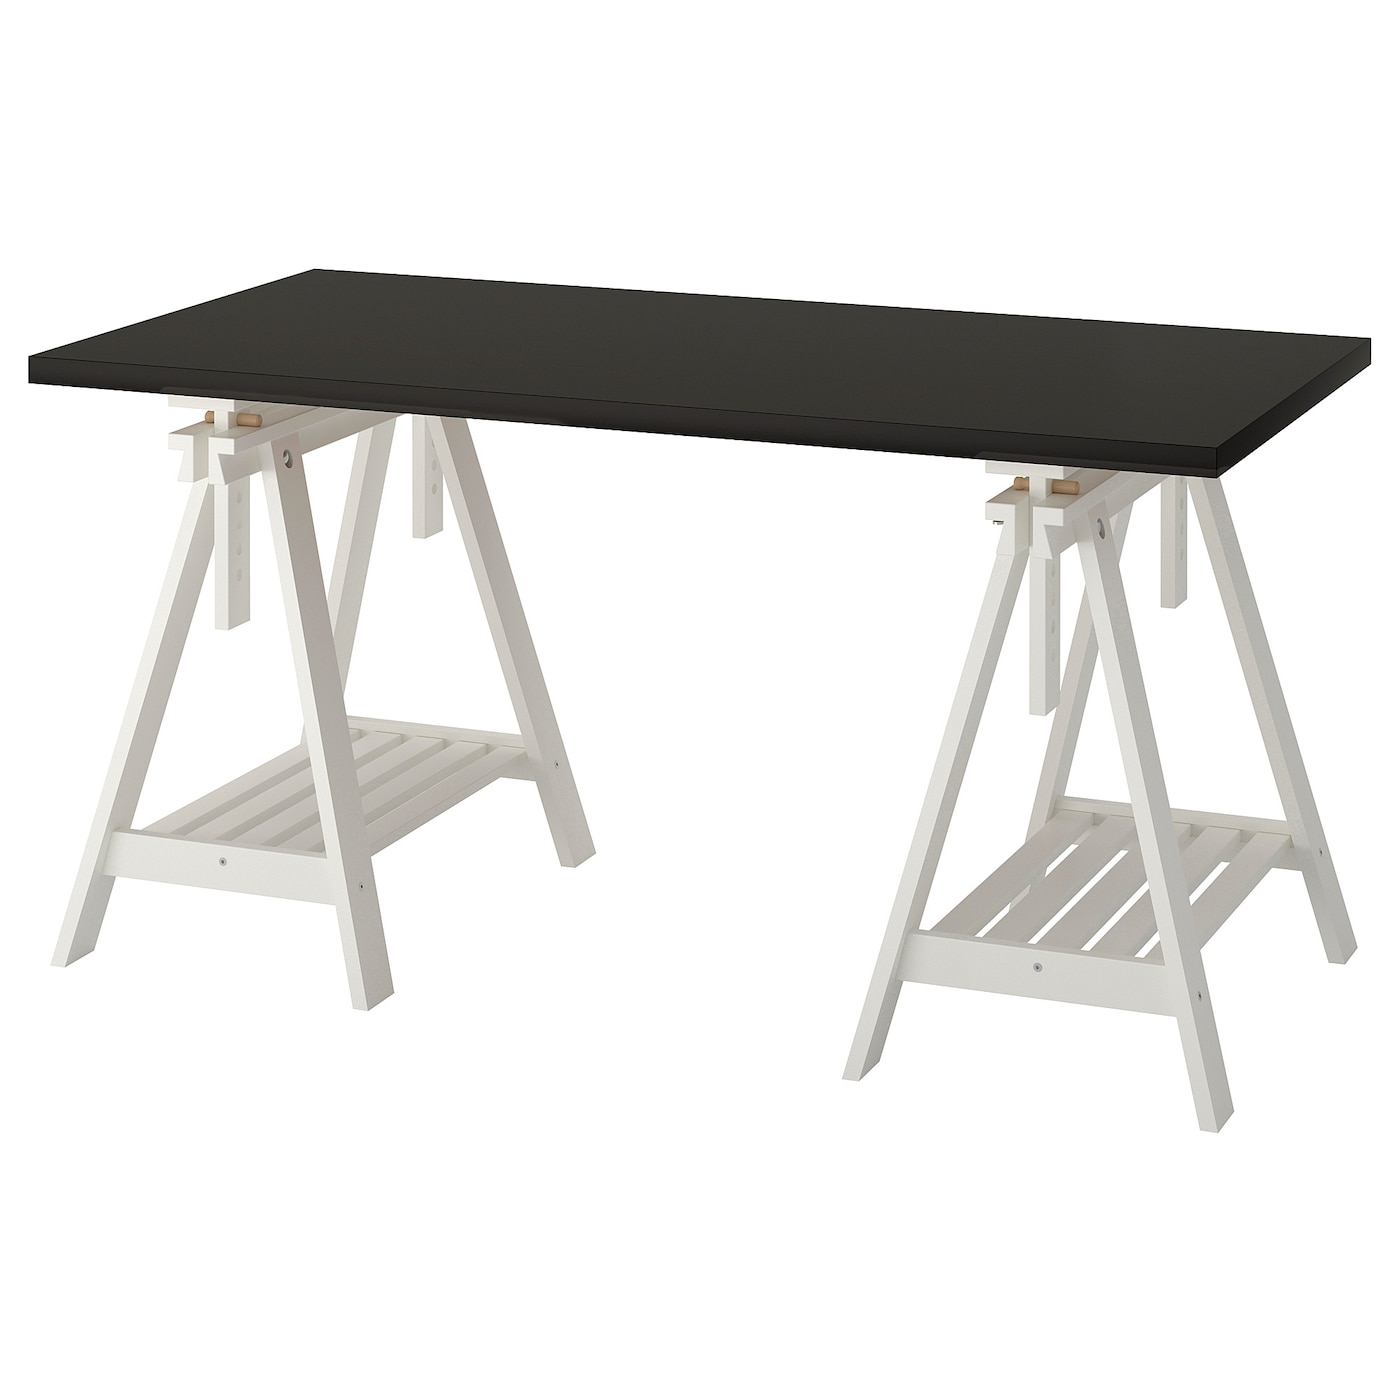 Linnmon Finnvard Table Black Brown